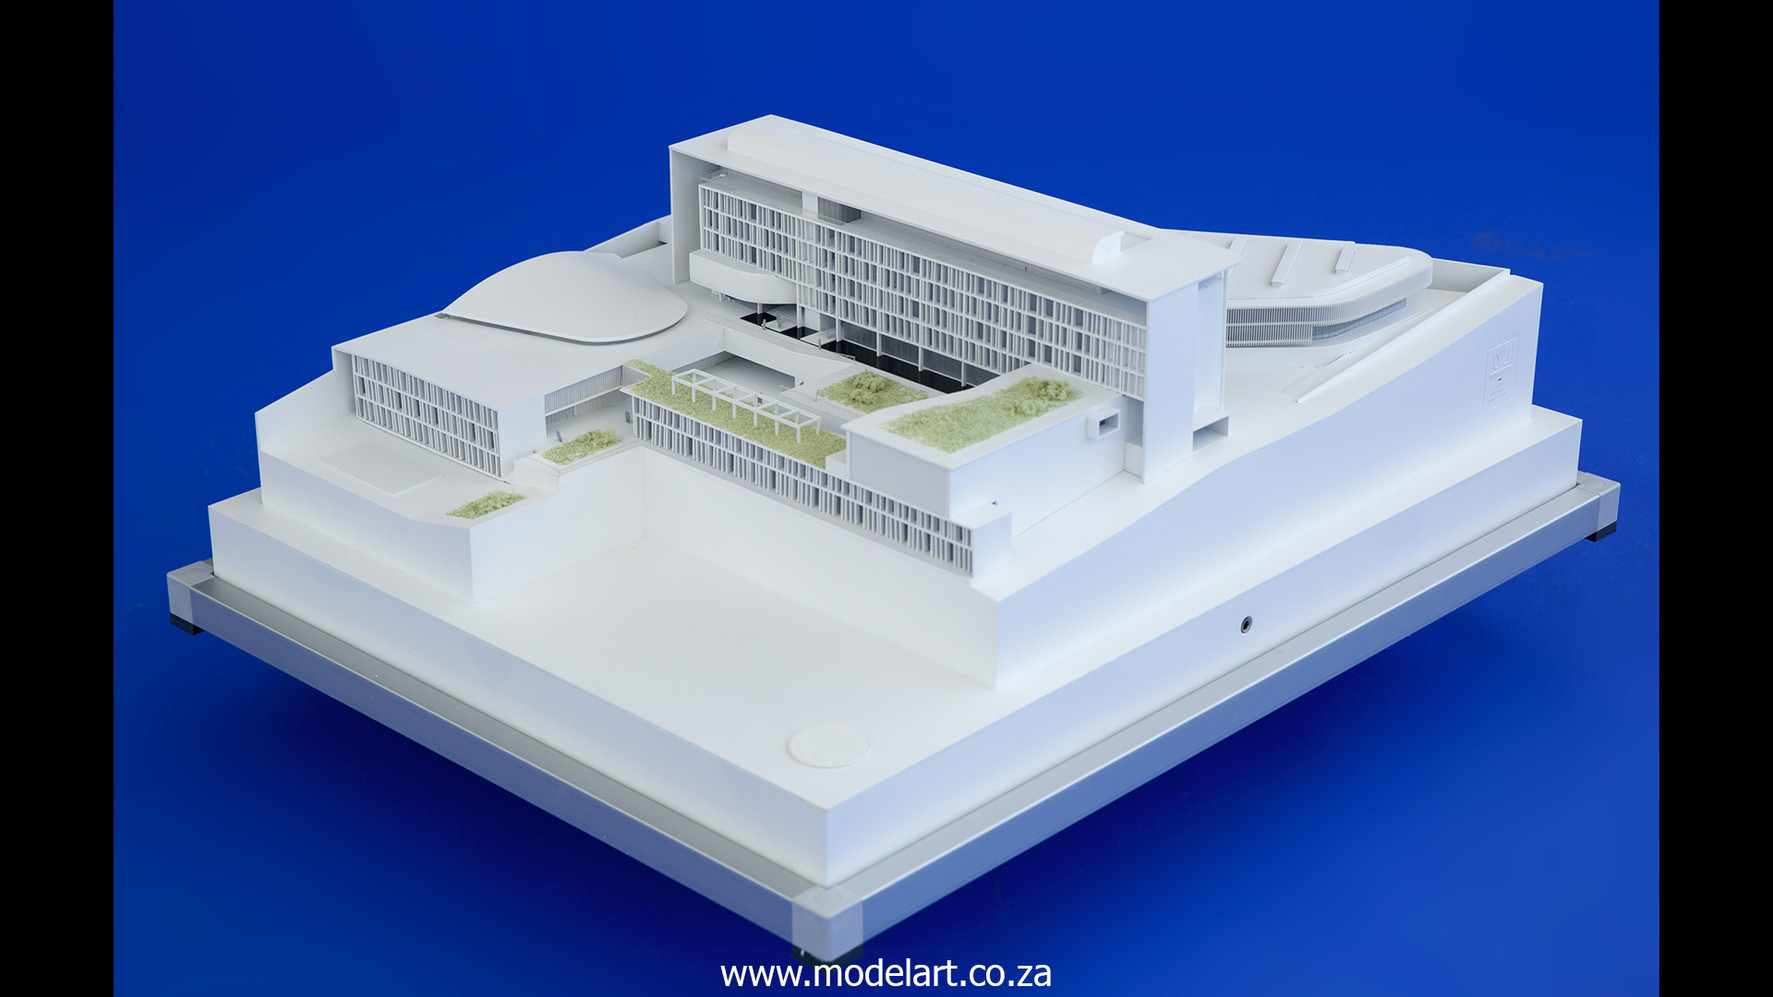 Architectural-Scale-Model-Conceptual-AU Building-6